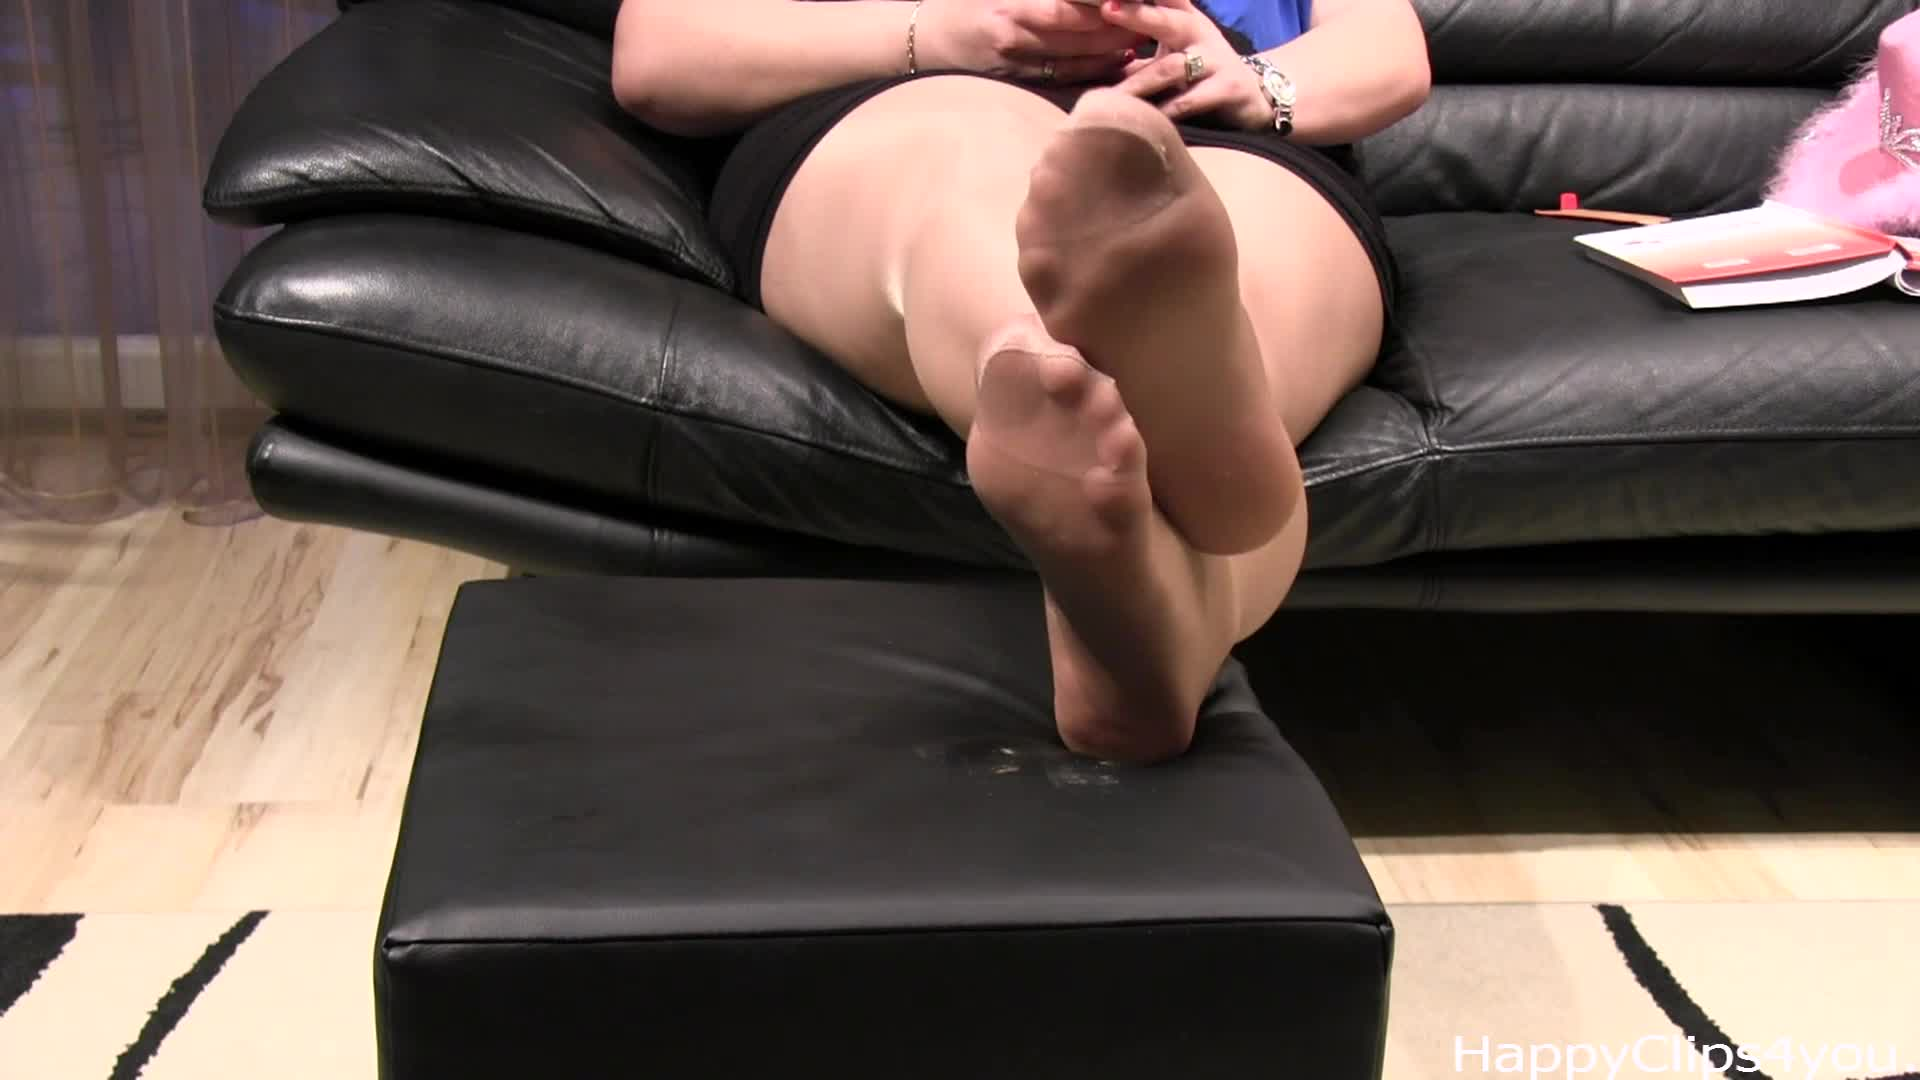 Carolina takes off her boots